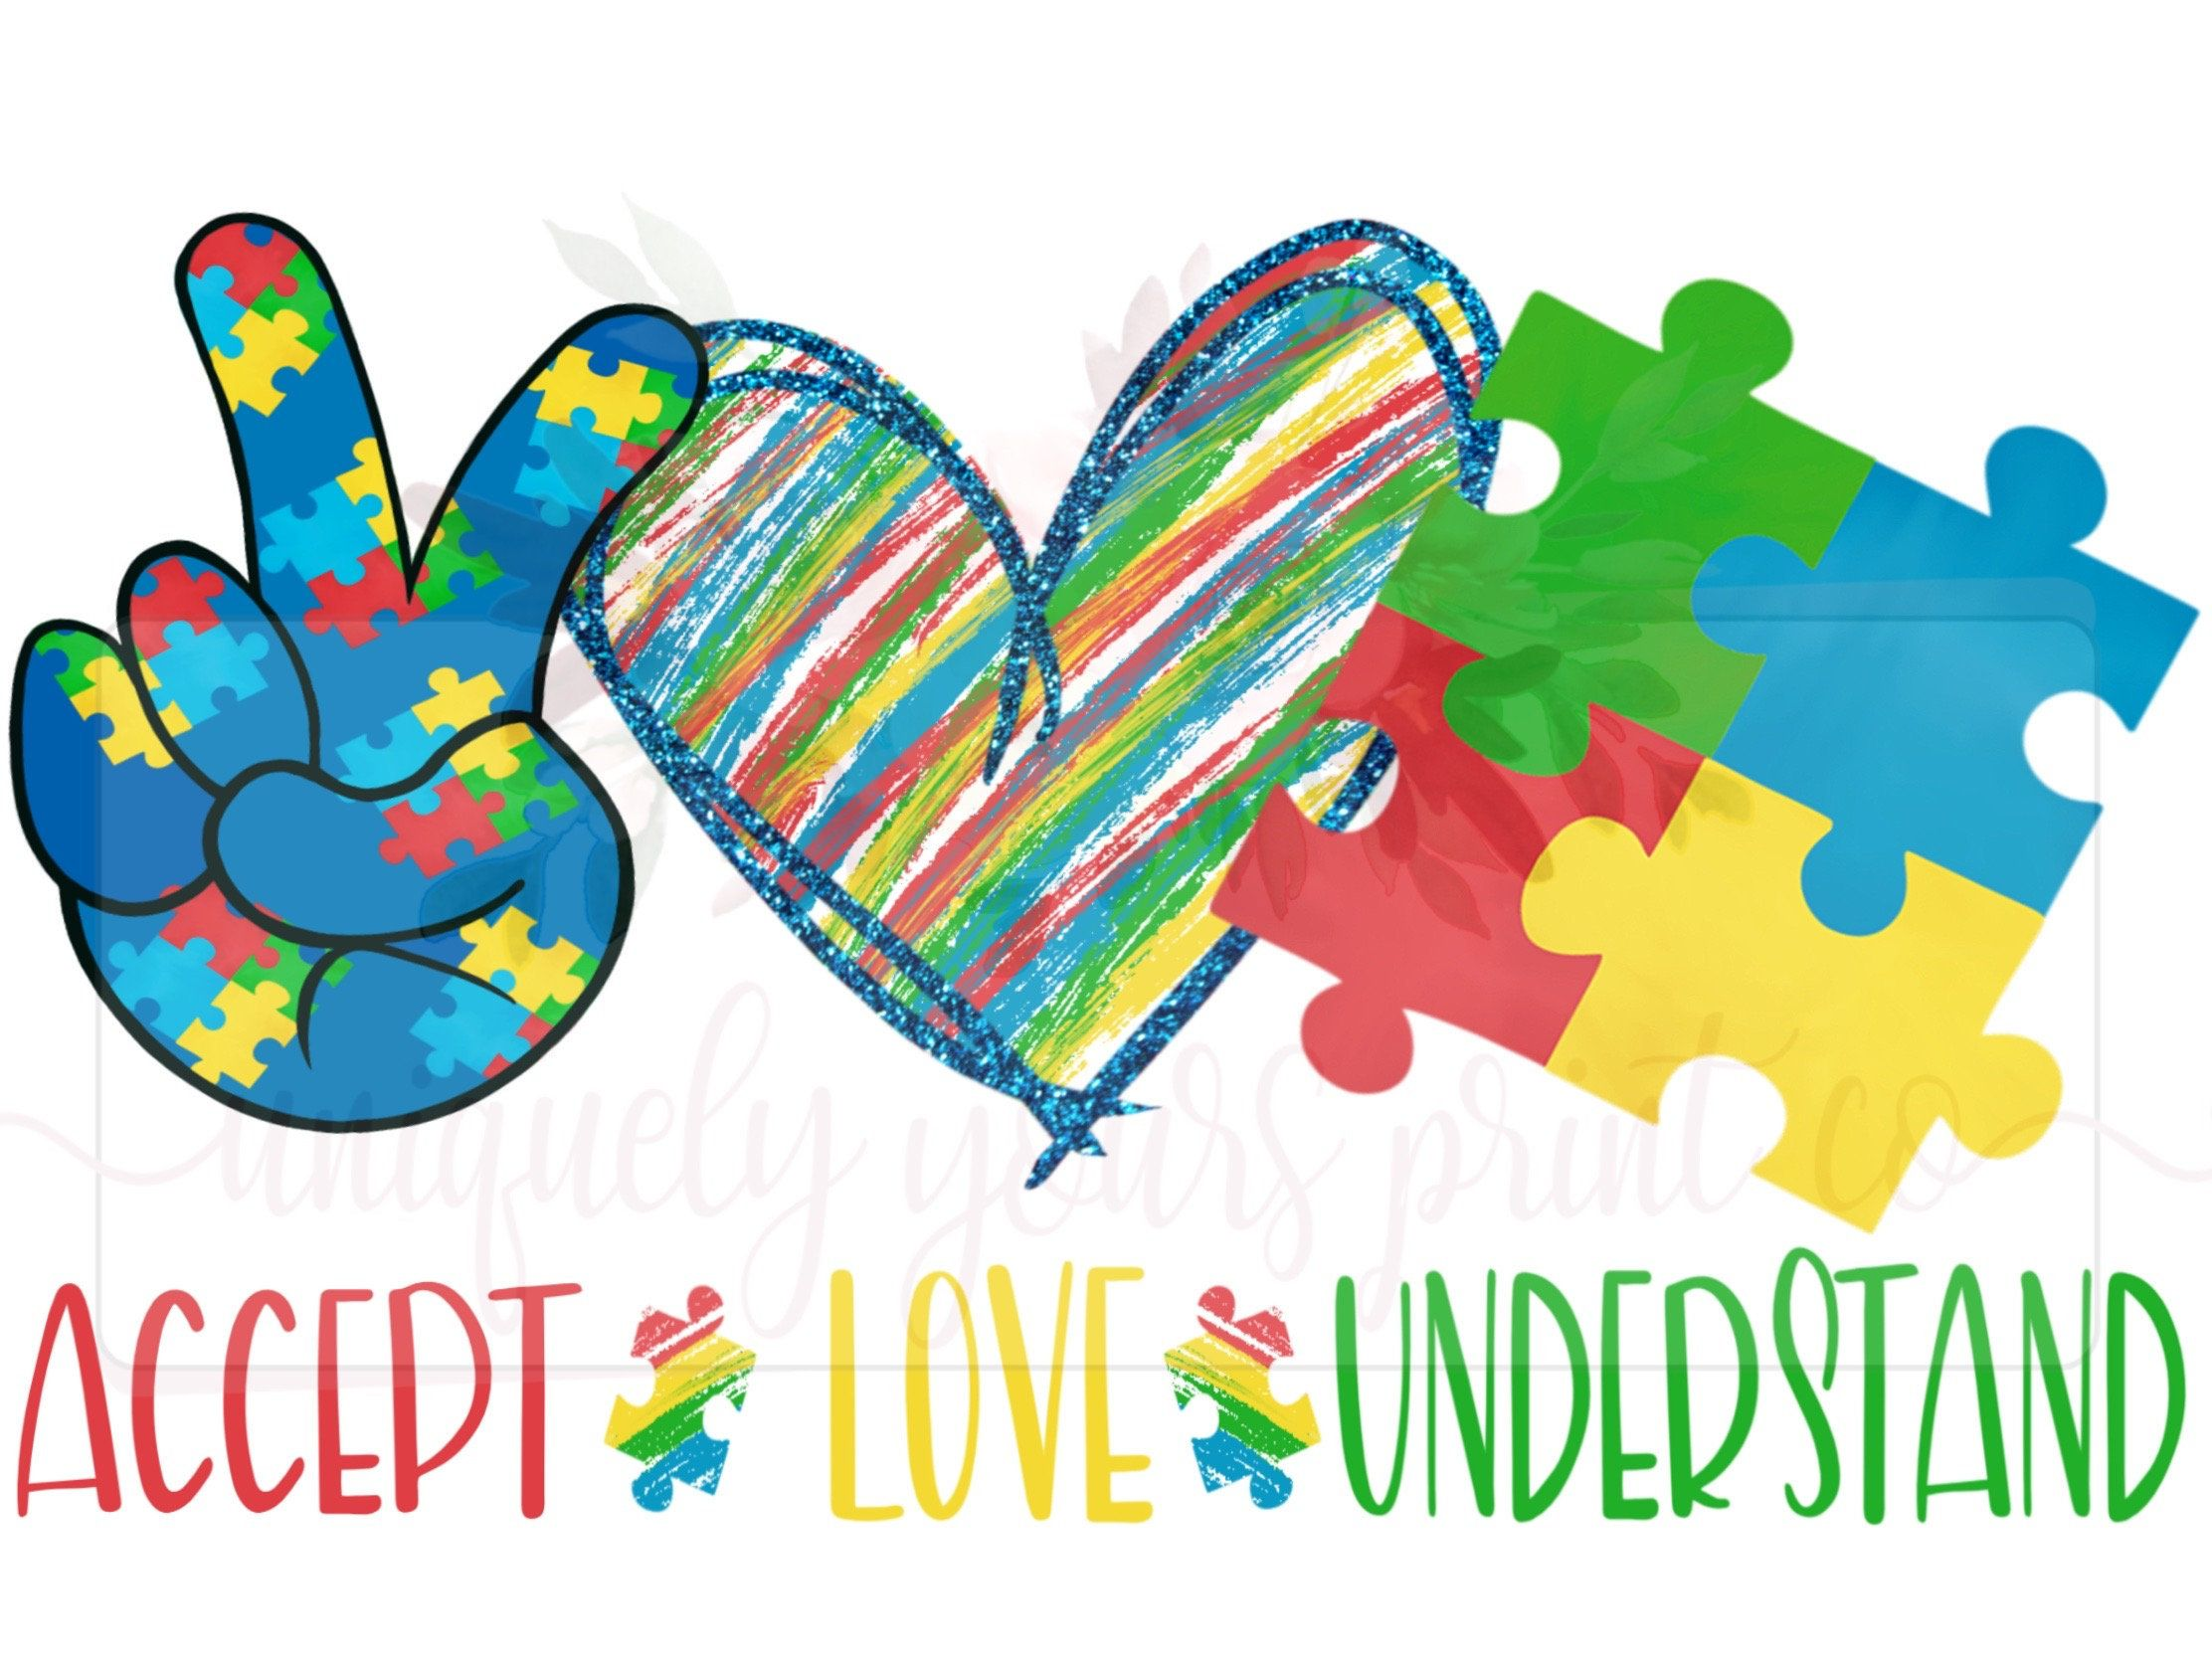 Autism Awareness Digital Download Png Sublimation Hand Drawn Doodle Puzzle Pieces Printable Accept Love Understand Peace In 2021 How To Draw Hands Peace And Love Cricut Projects Vinyl